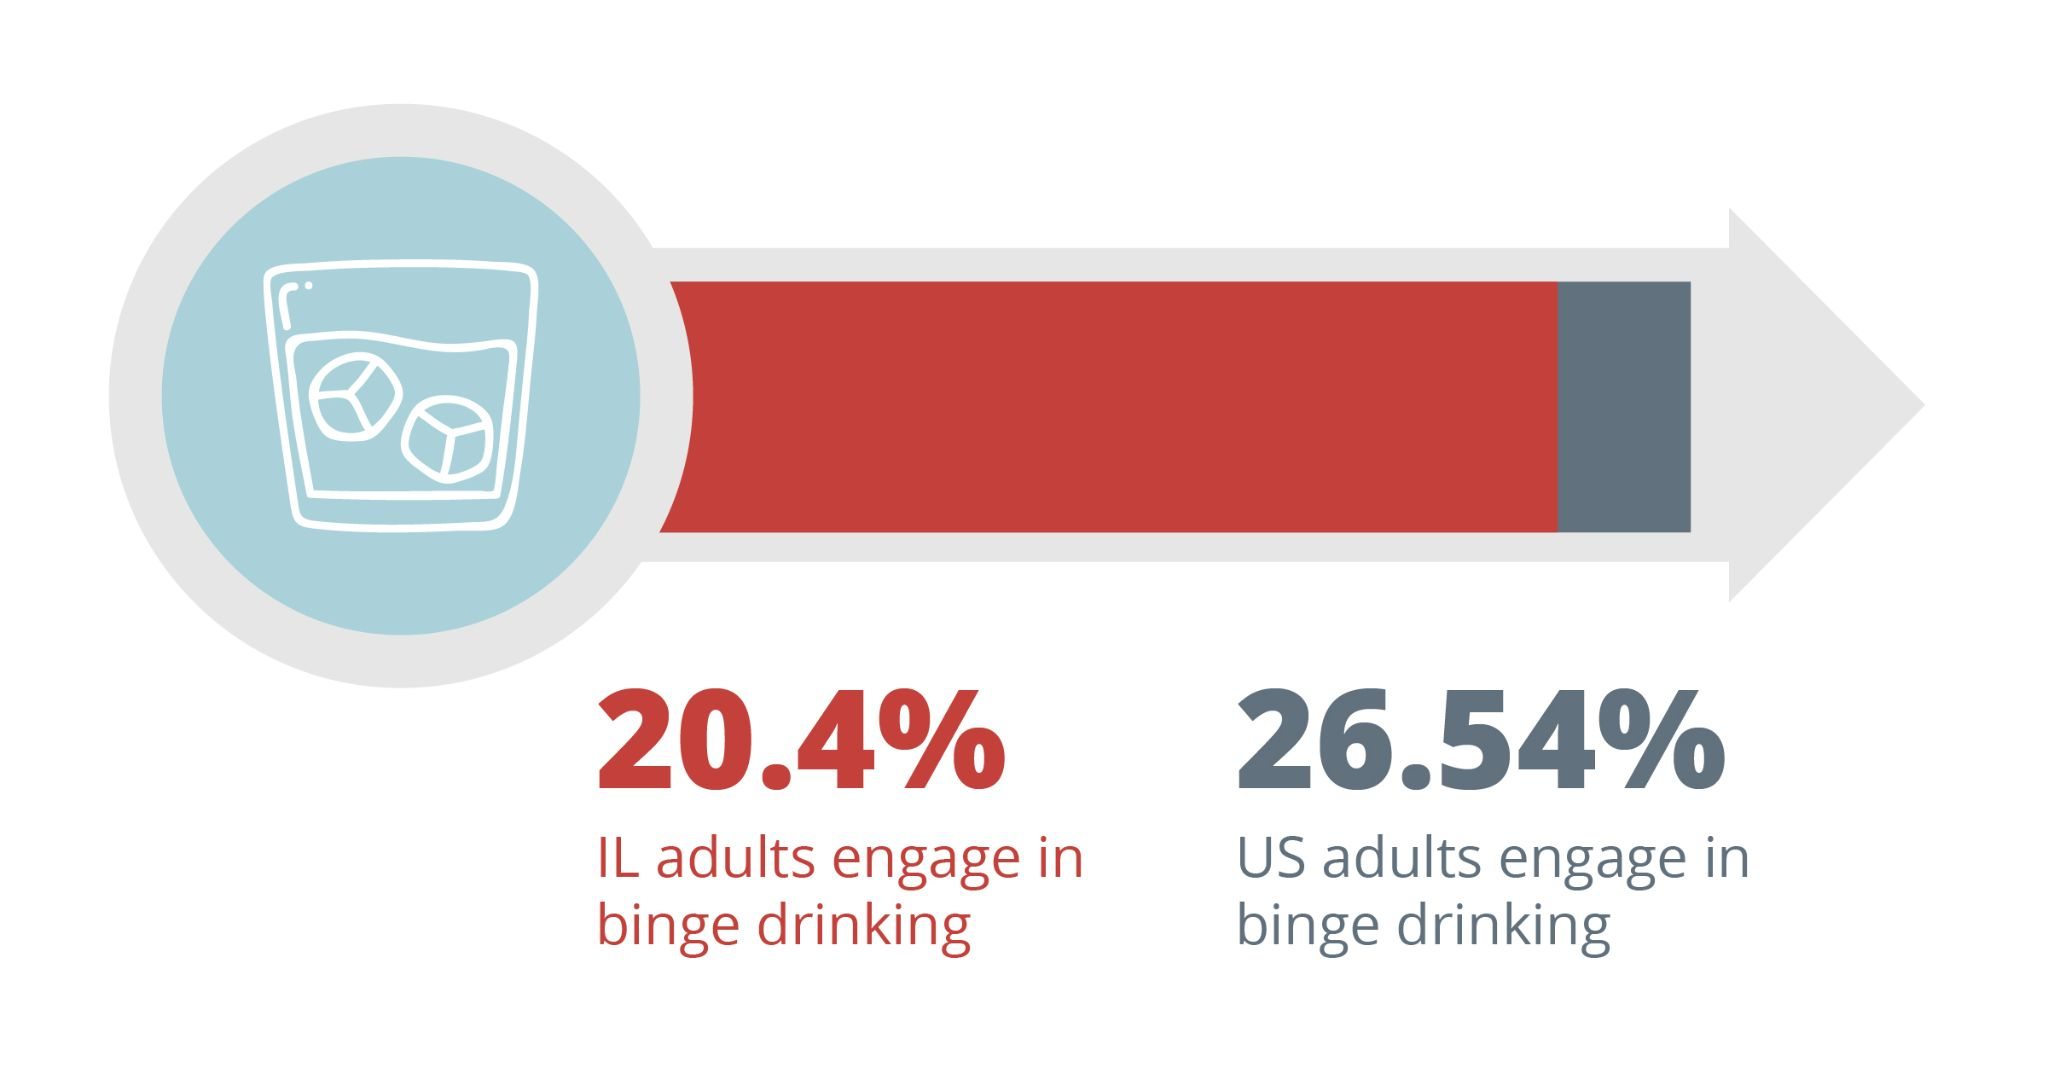 20.4% of illinois adults engage in binge drinking. 26.54% of American adults engage in binge drinking.